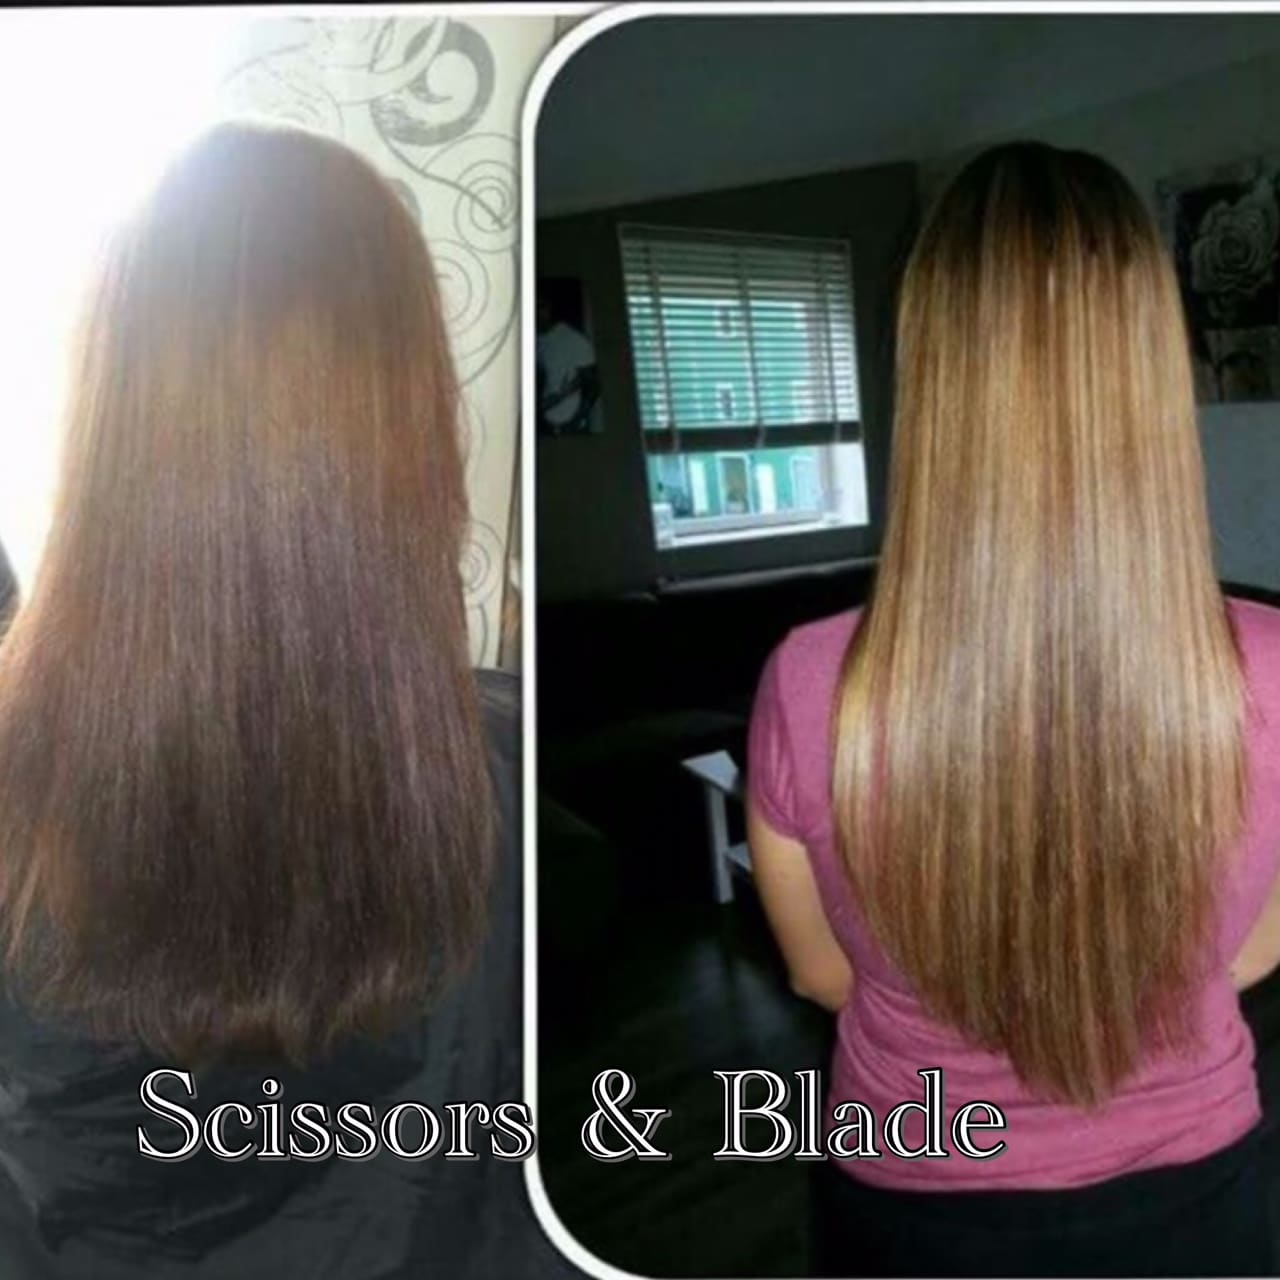 scissors-blade hair weave